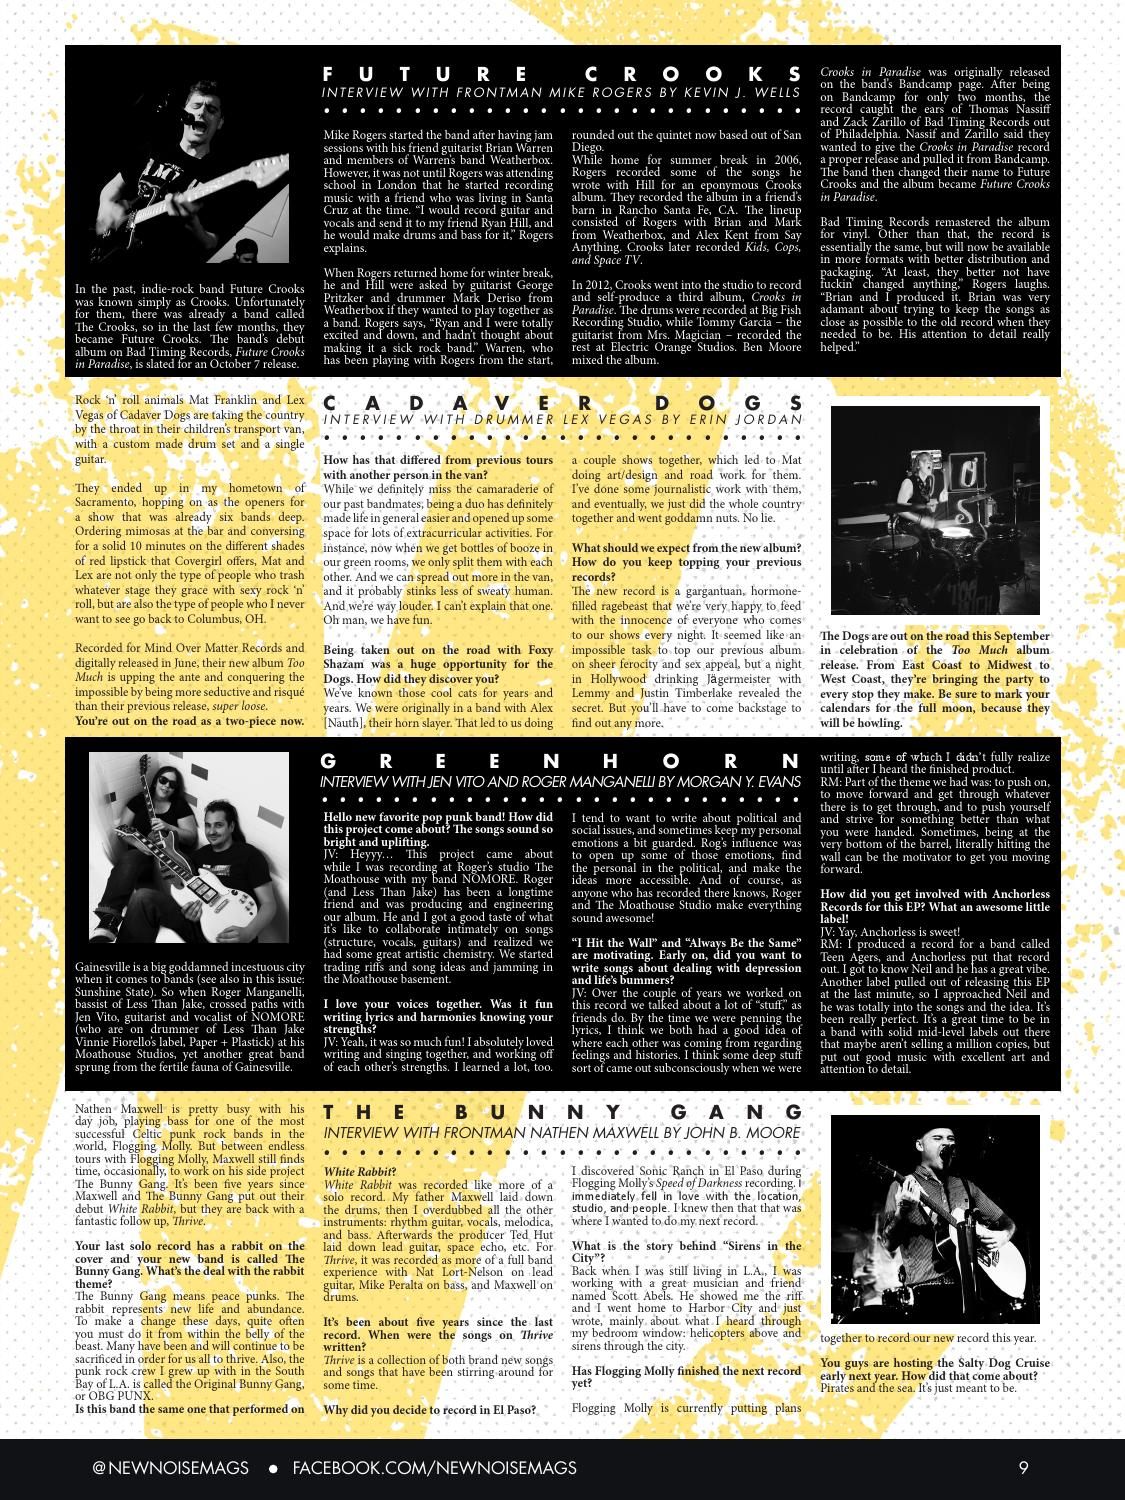 New Noise Magazine - Issue #12 by New Noise Magazine - issuu